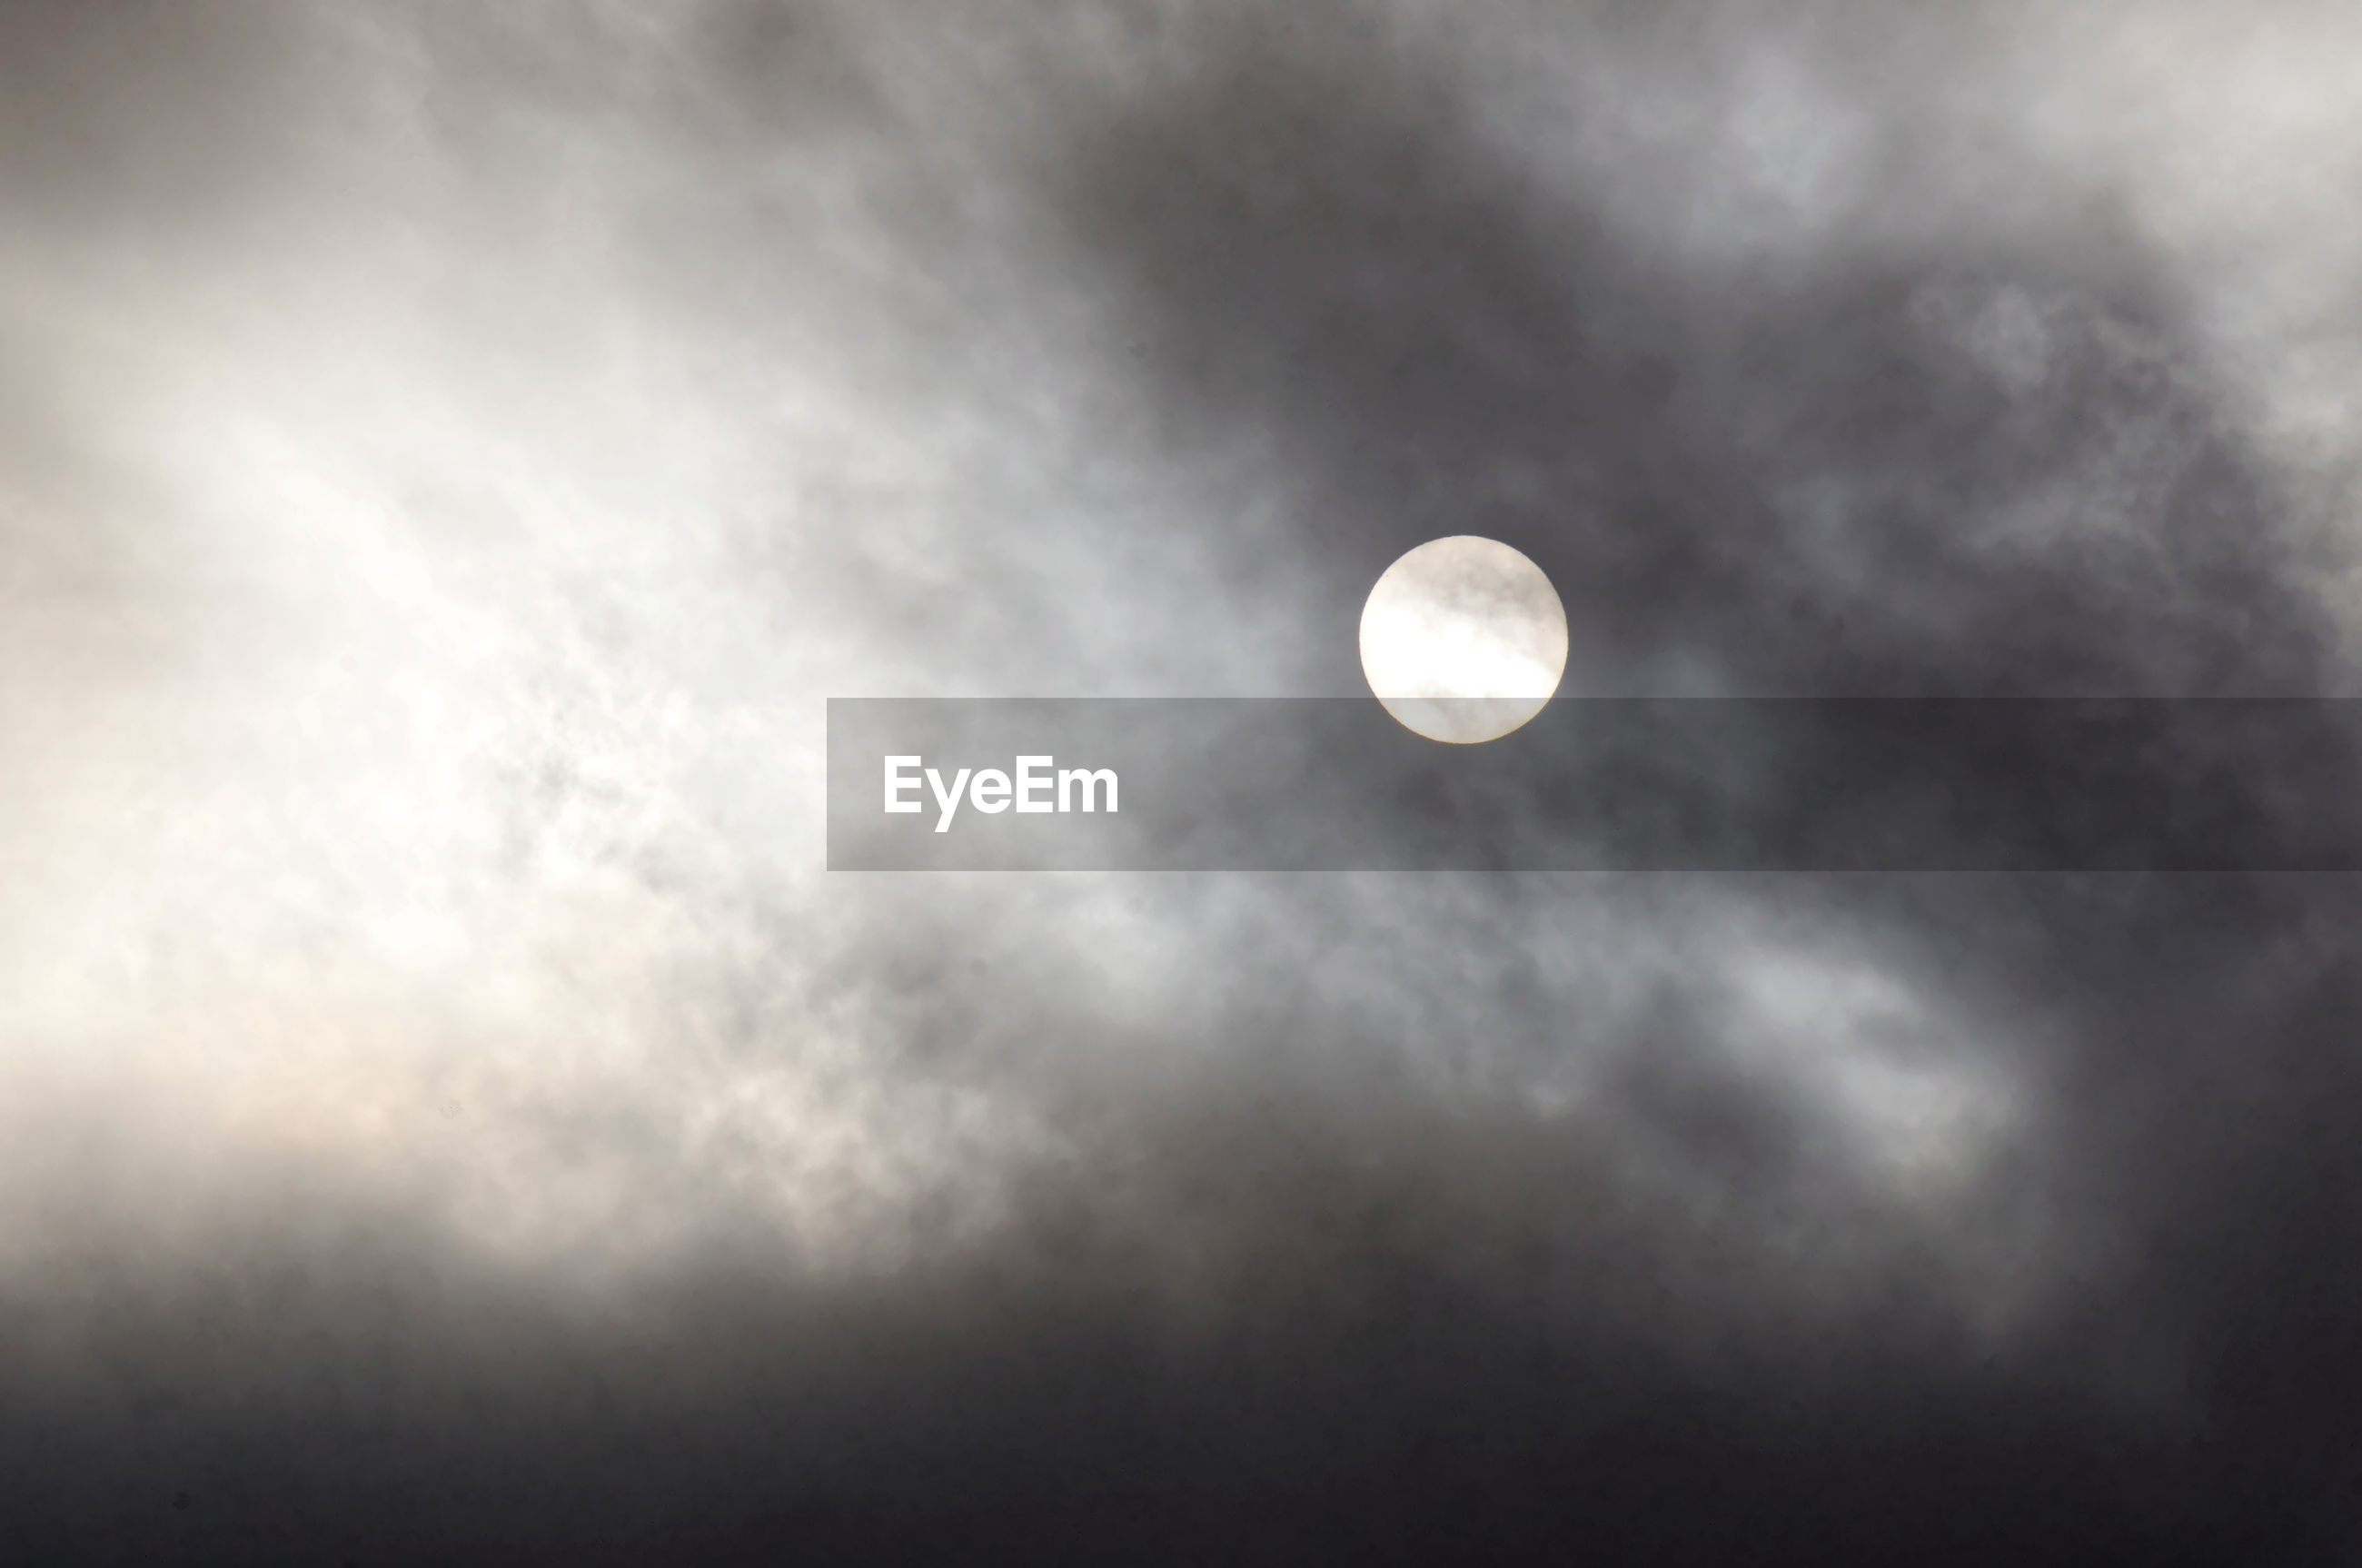 moon, beauty in nature, scenics, low angle view, tranquil scene, sky, tranquility, nature, full moon, majestic, cloud - sky, idyllic, astronomy, cloud, outdoors, planetary moon, dark, cloudy, circle, cloudscape, exploration, space exploration, no people, dreamlike